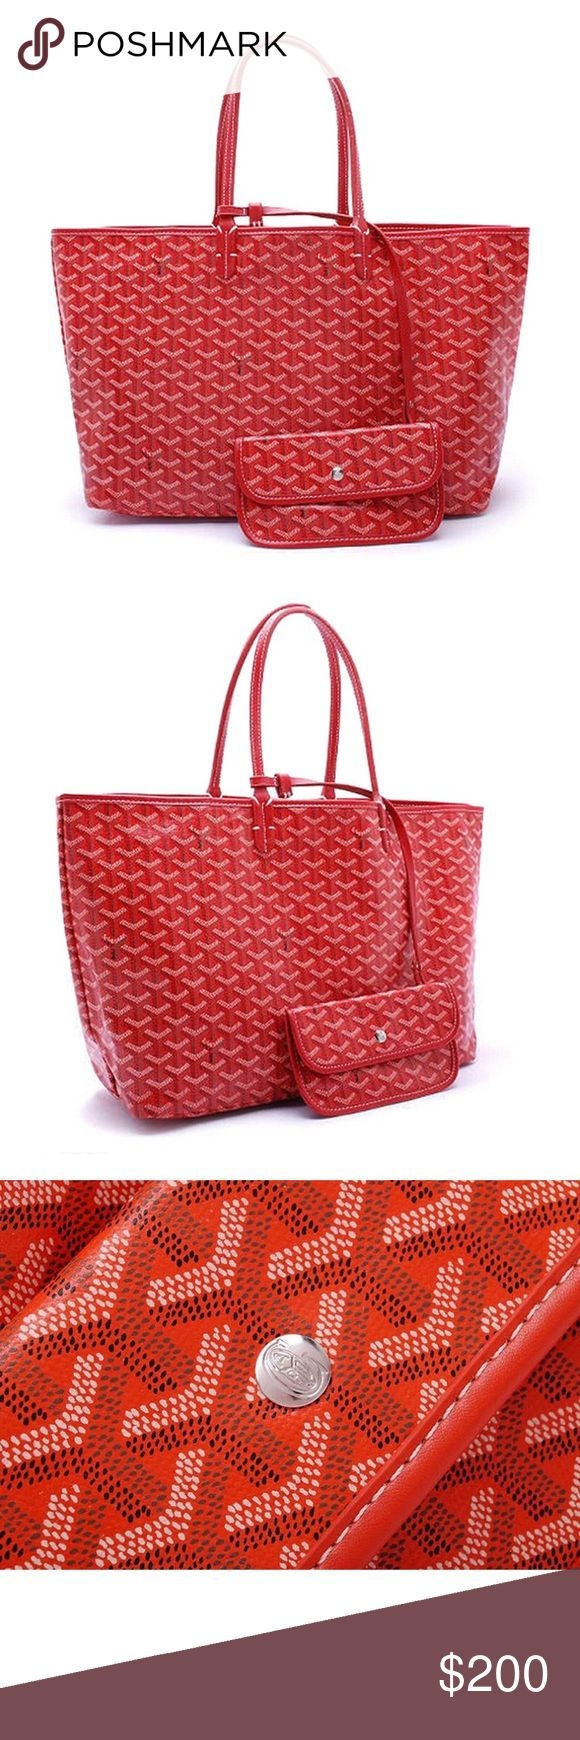 Goyard Red St Luis PM Tote w/ Matching wallet $200 Goyard inspired pm Tote really nice looks very similar to original for a fraction of the cost $2000! Get yours for only $200. Nobody can tell the difference Goyard Bags Totes